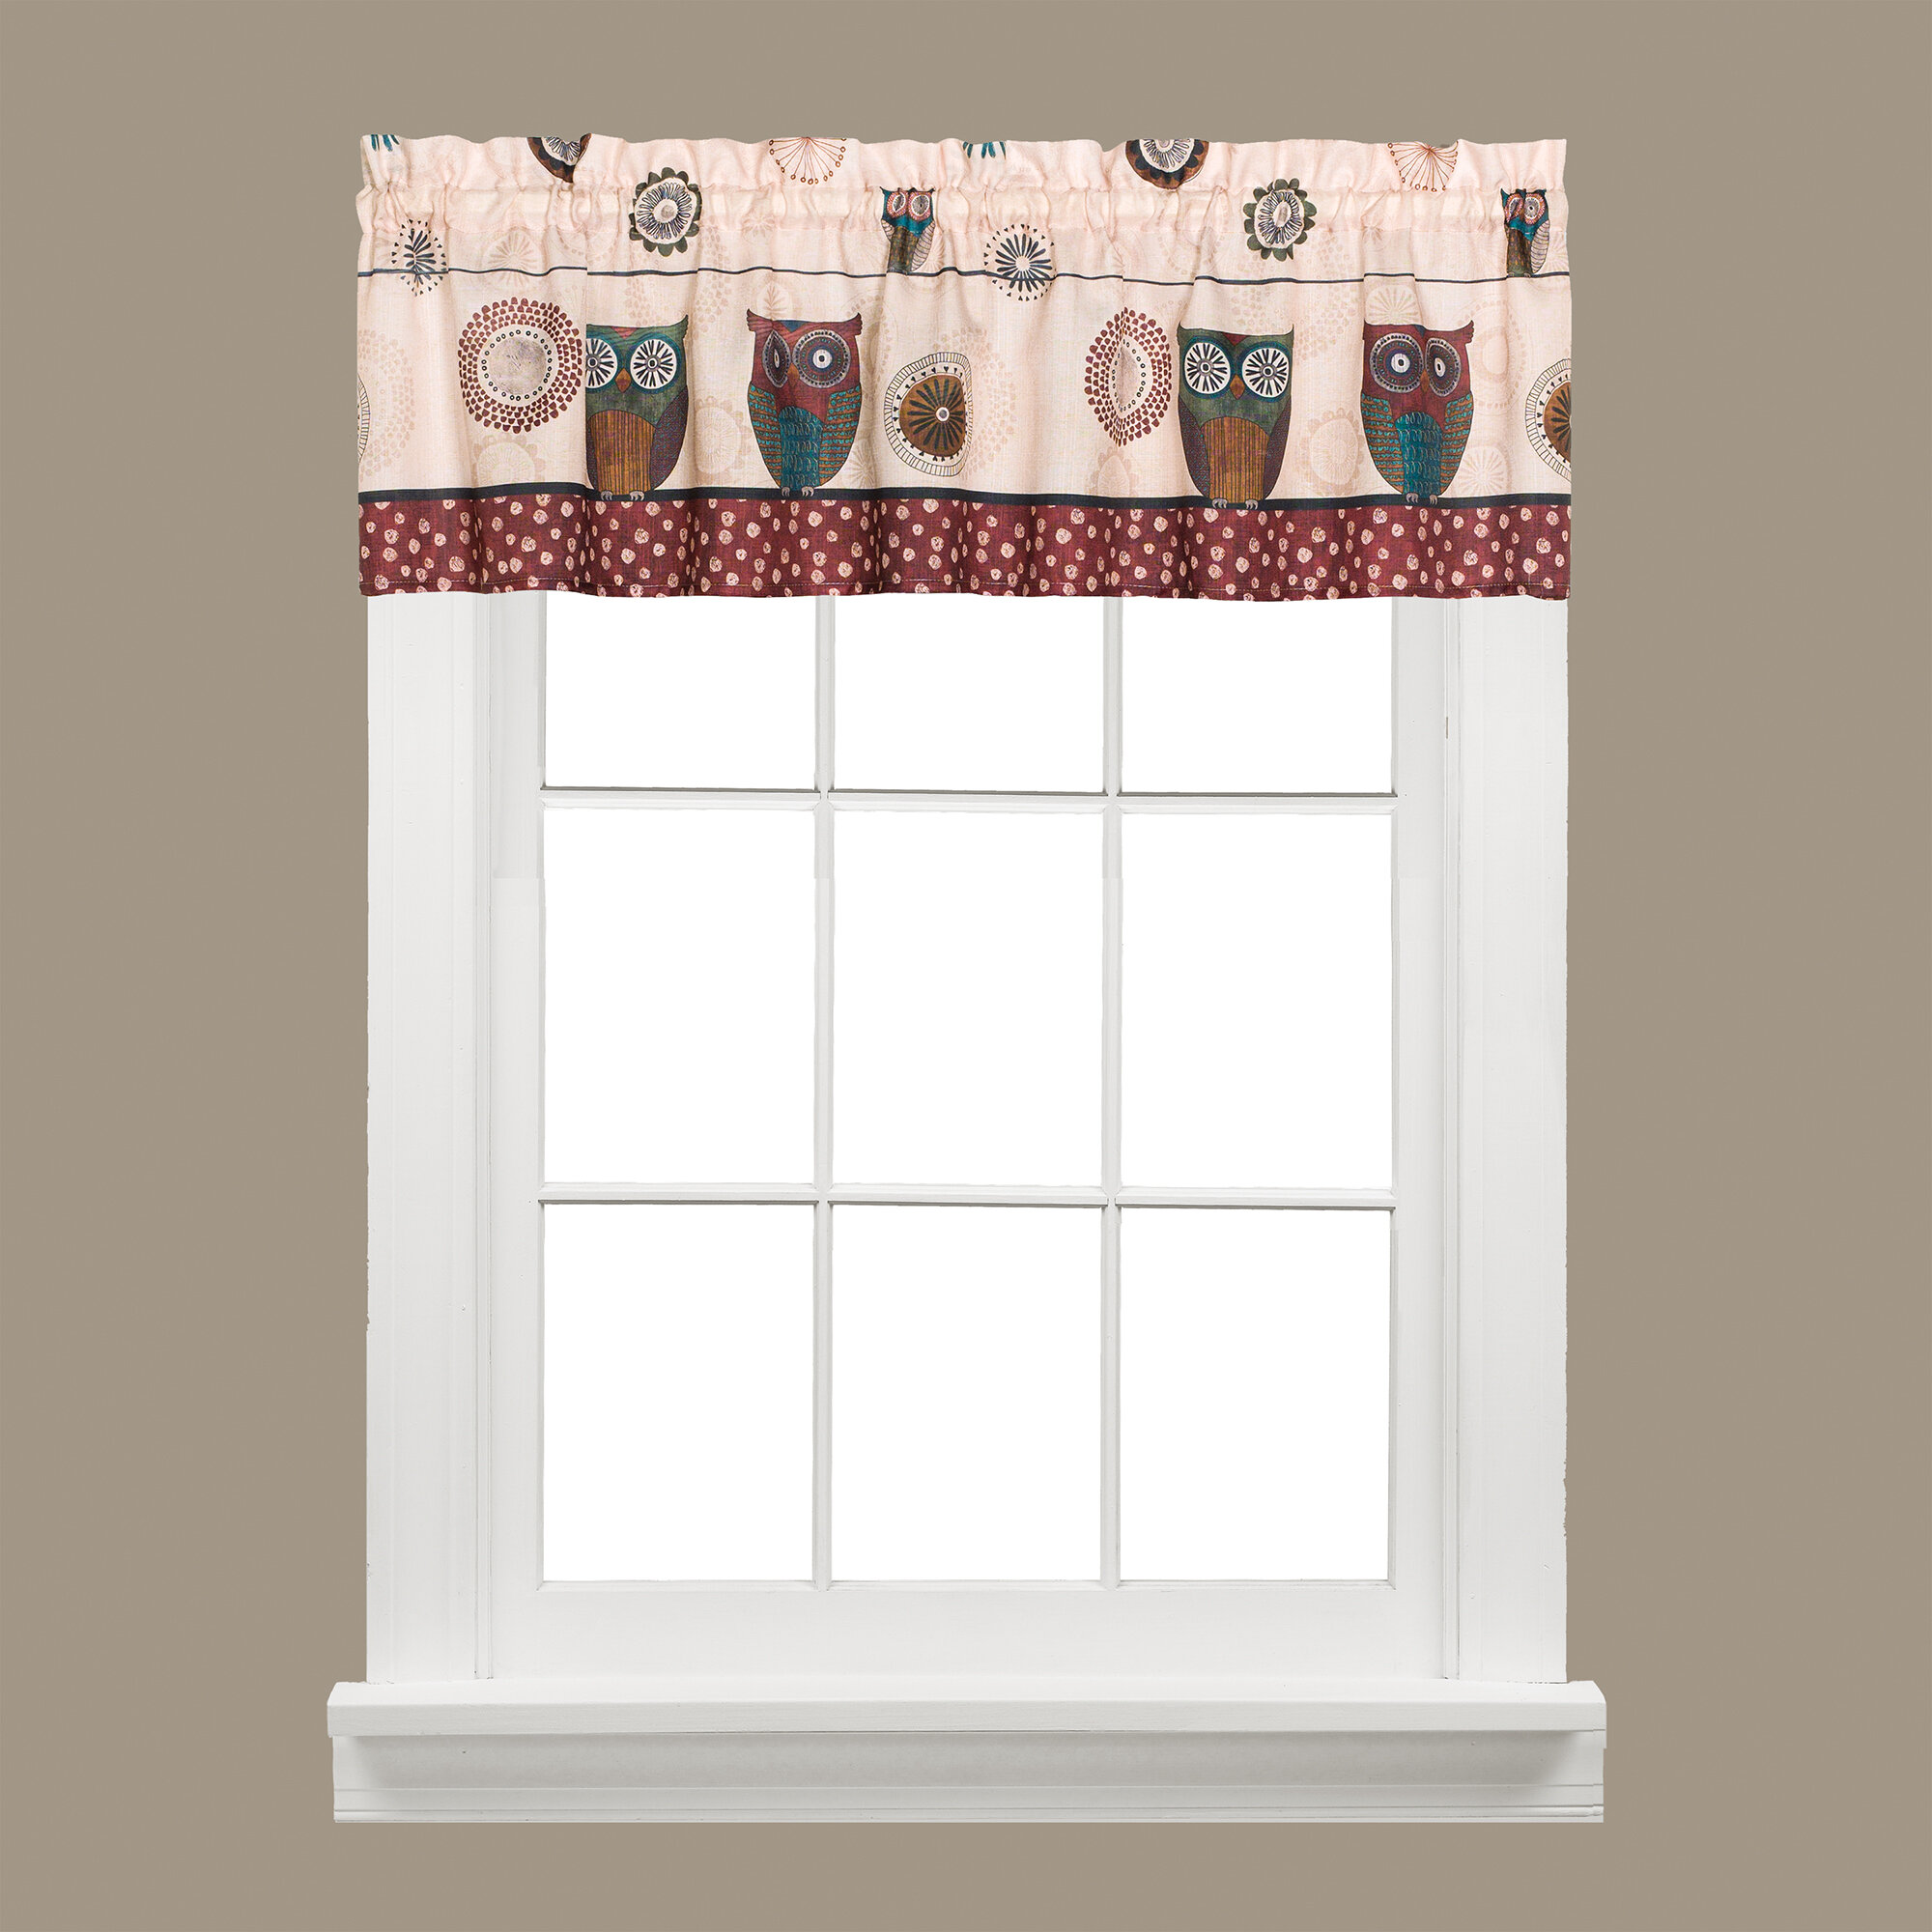 shipping product valance windows garden on park for over twisted overstock with natalie valances beads madison free tab orders home